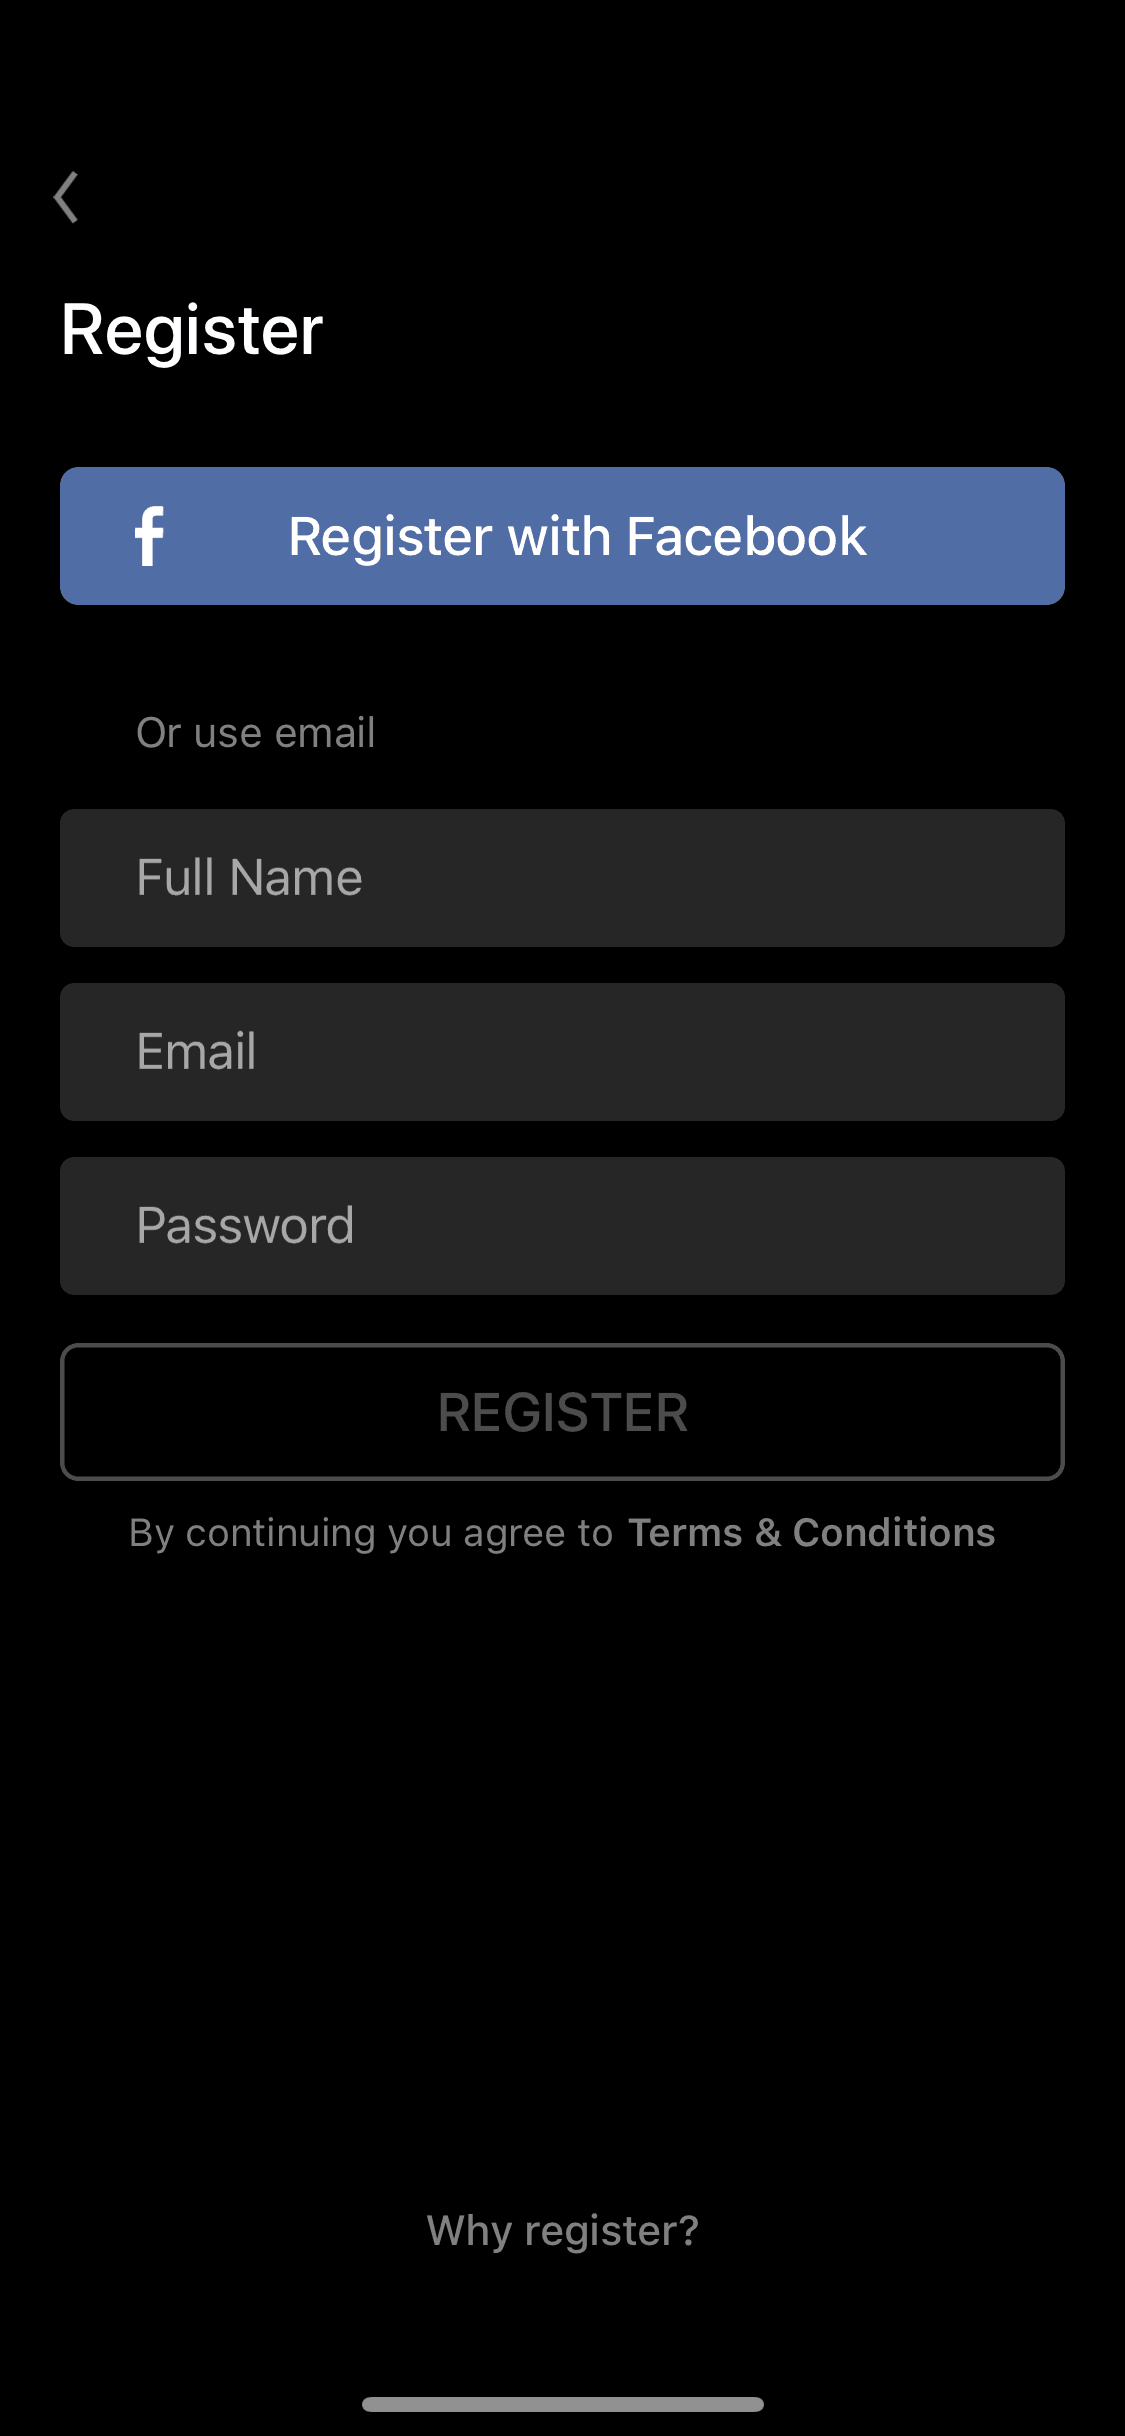 Register screen on iOS by Insight Timer